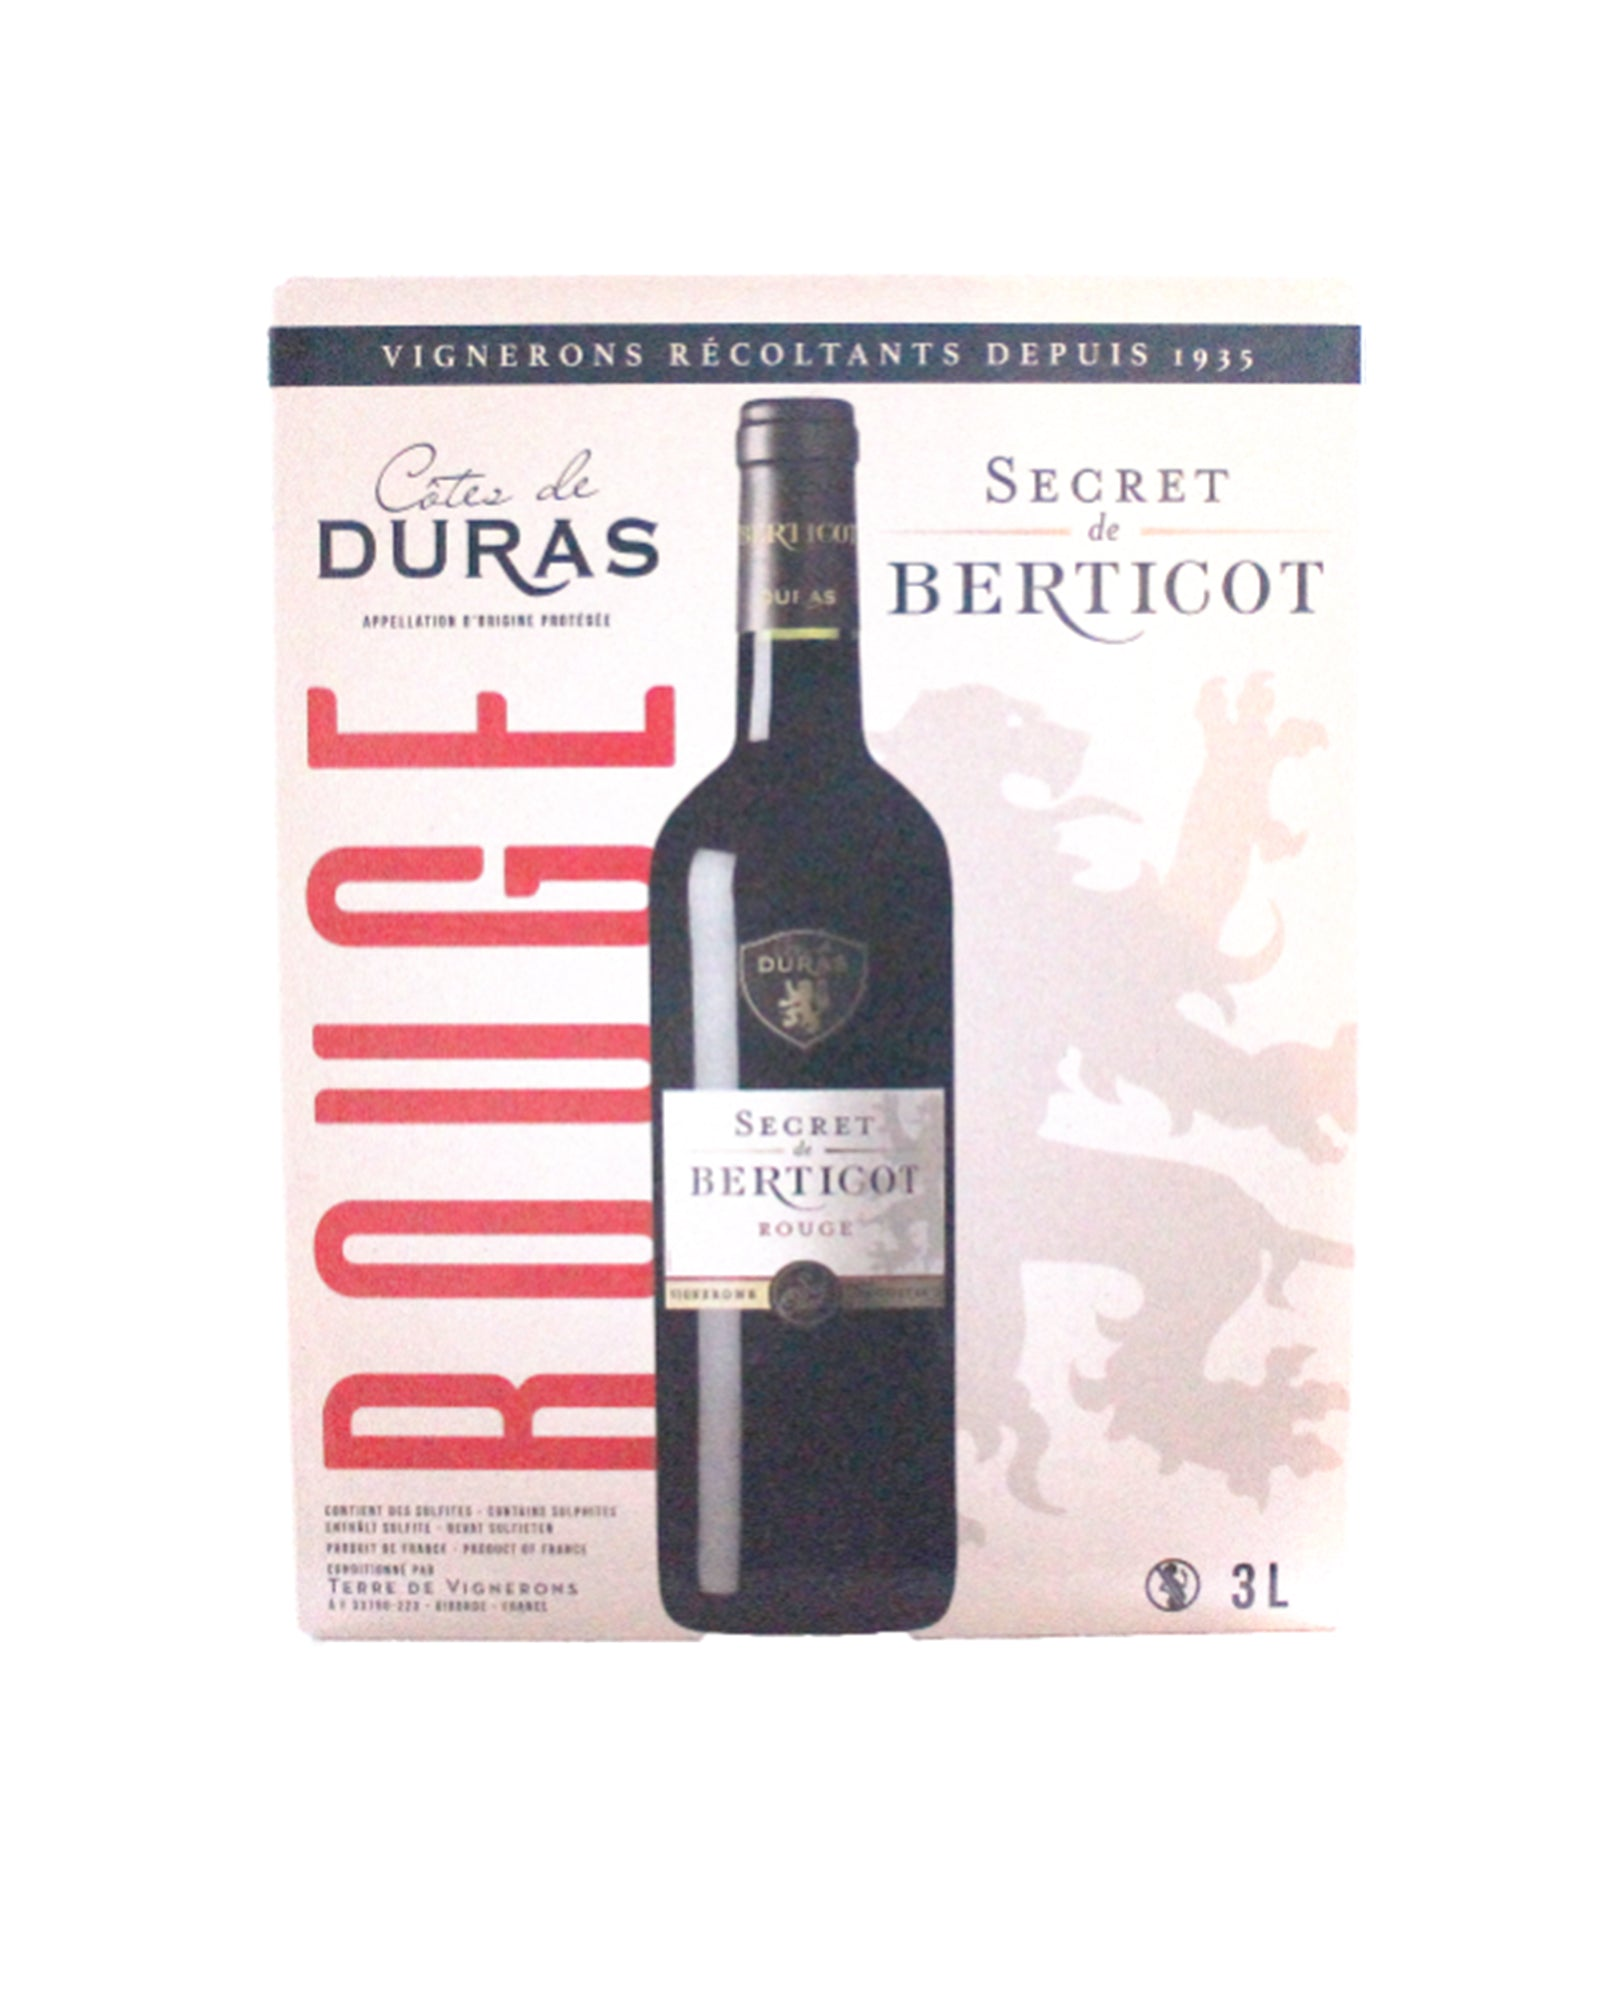 Côtes-De-Duras rouge Secret de Berticot bag in Box 3 litres